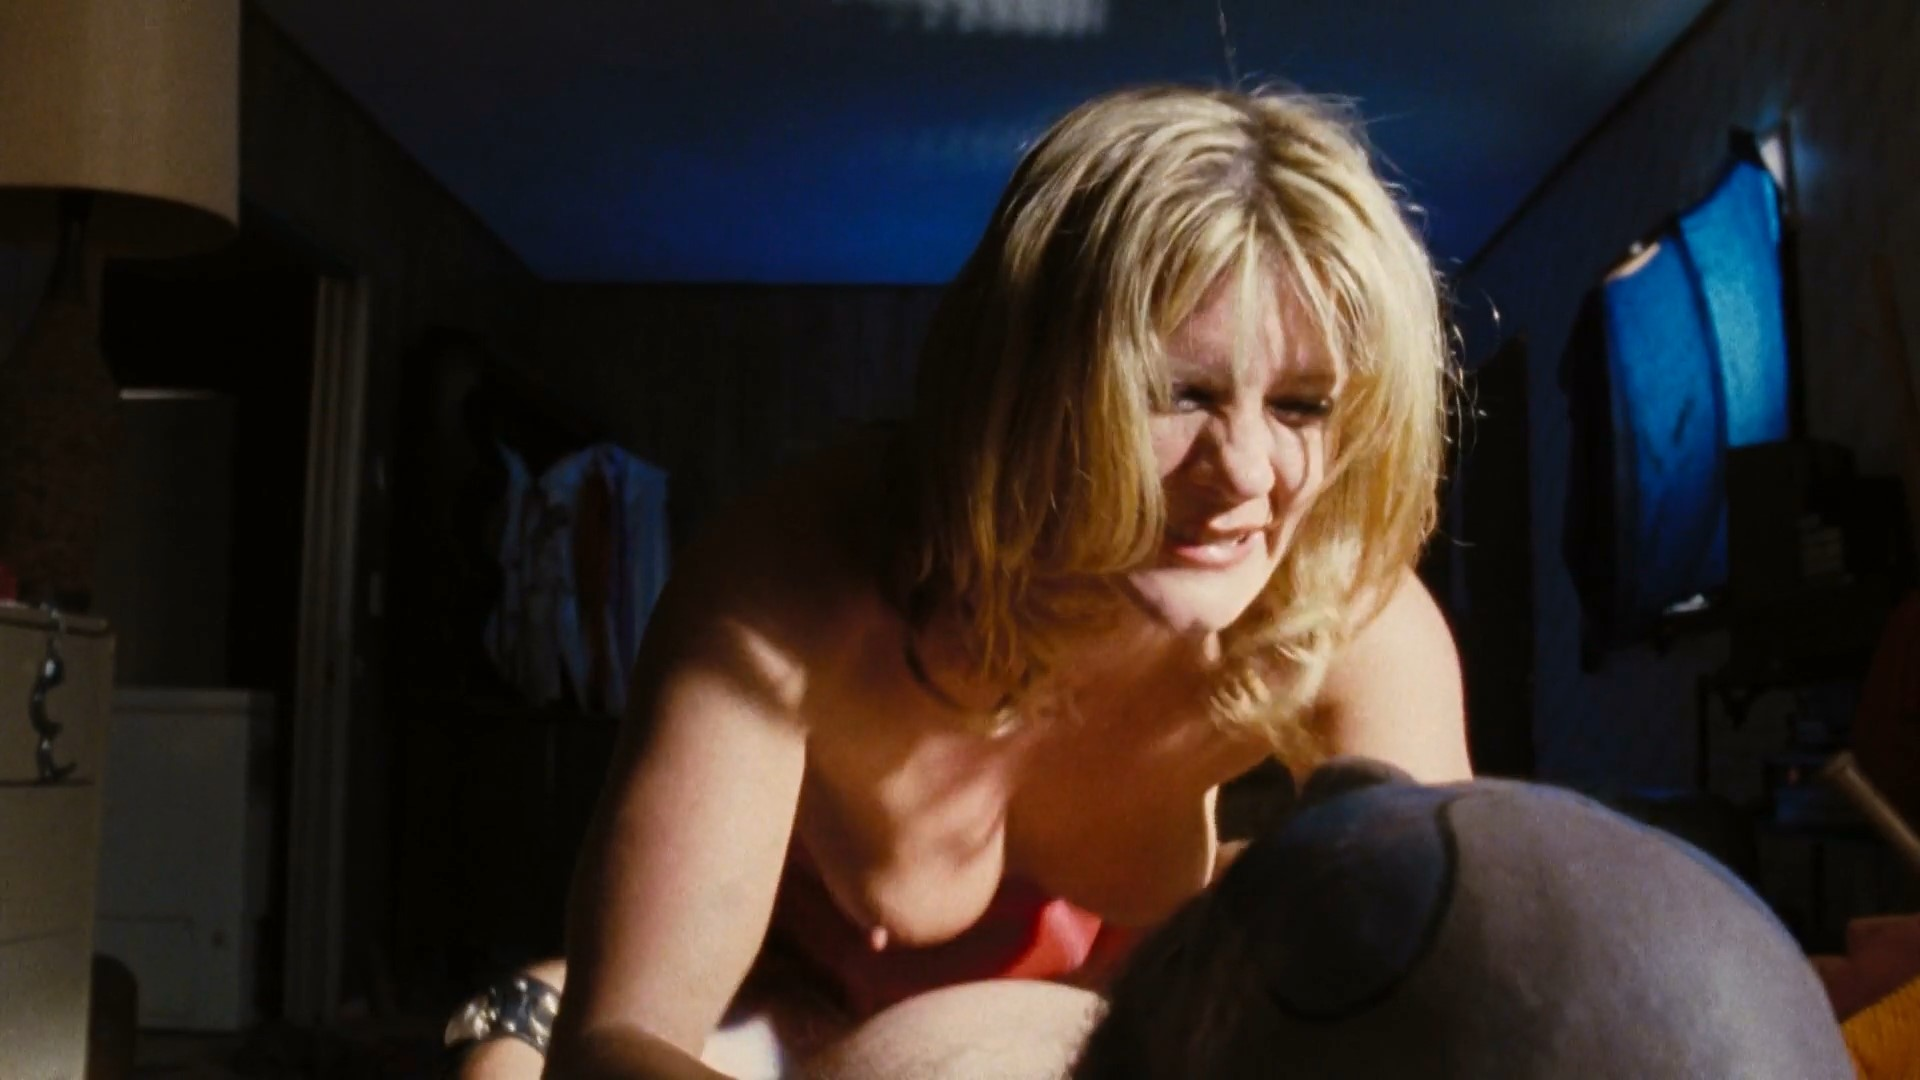 Ginger Lynn Allen – The Devil's Rejects (2005) HD 1080p